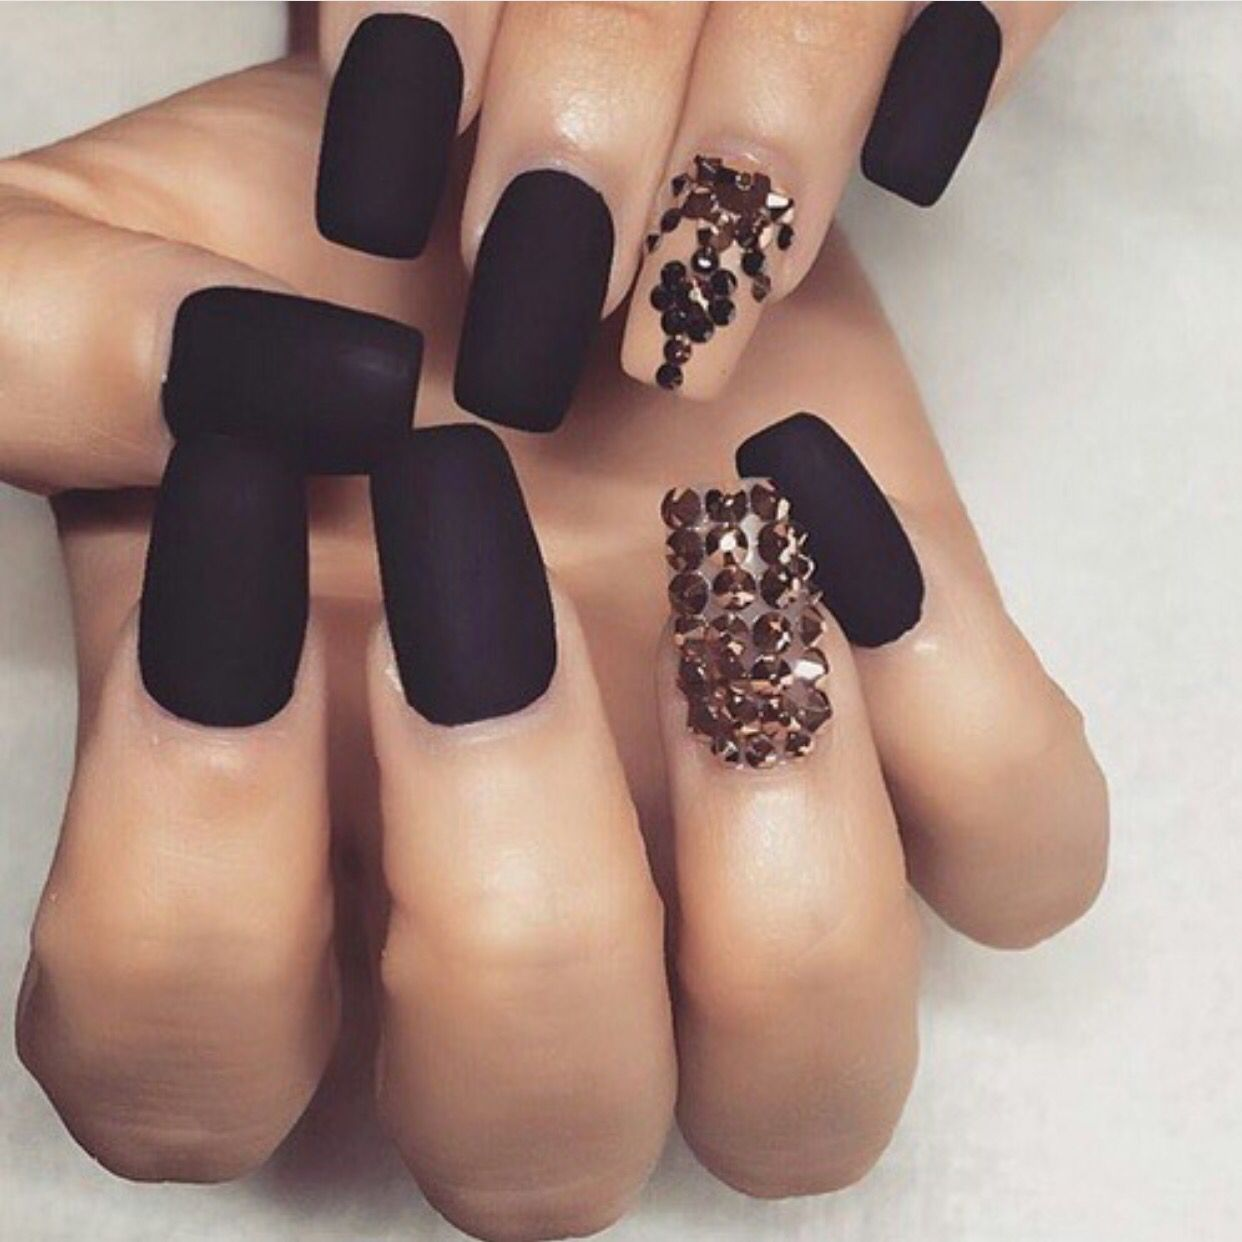 Nude Nail Art Designs That Will Look Great On Every Skin Tone